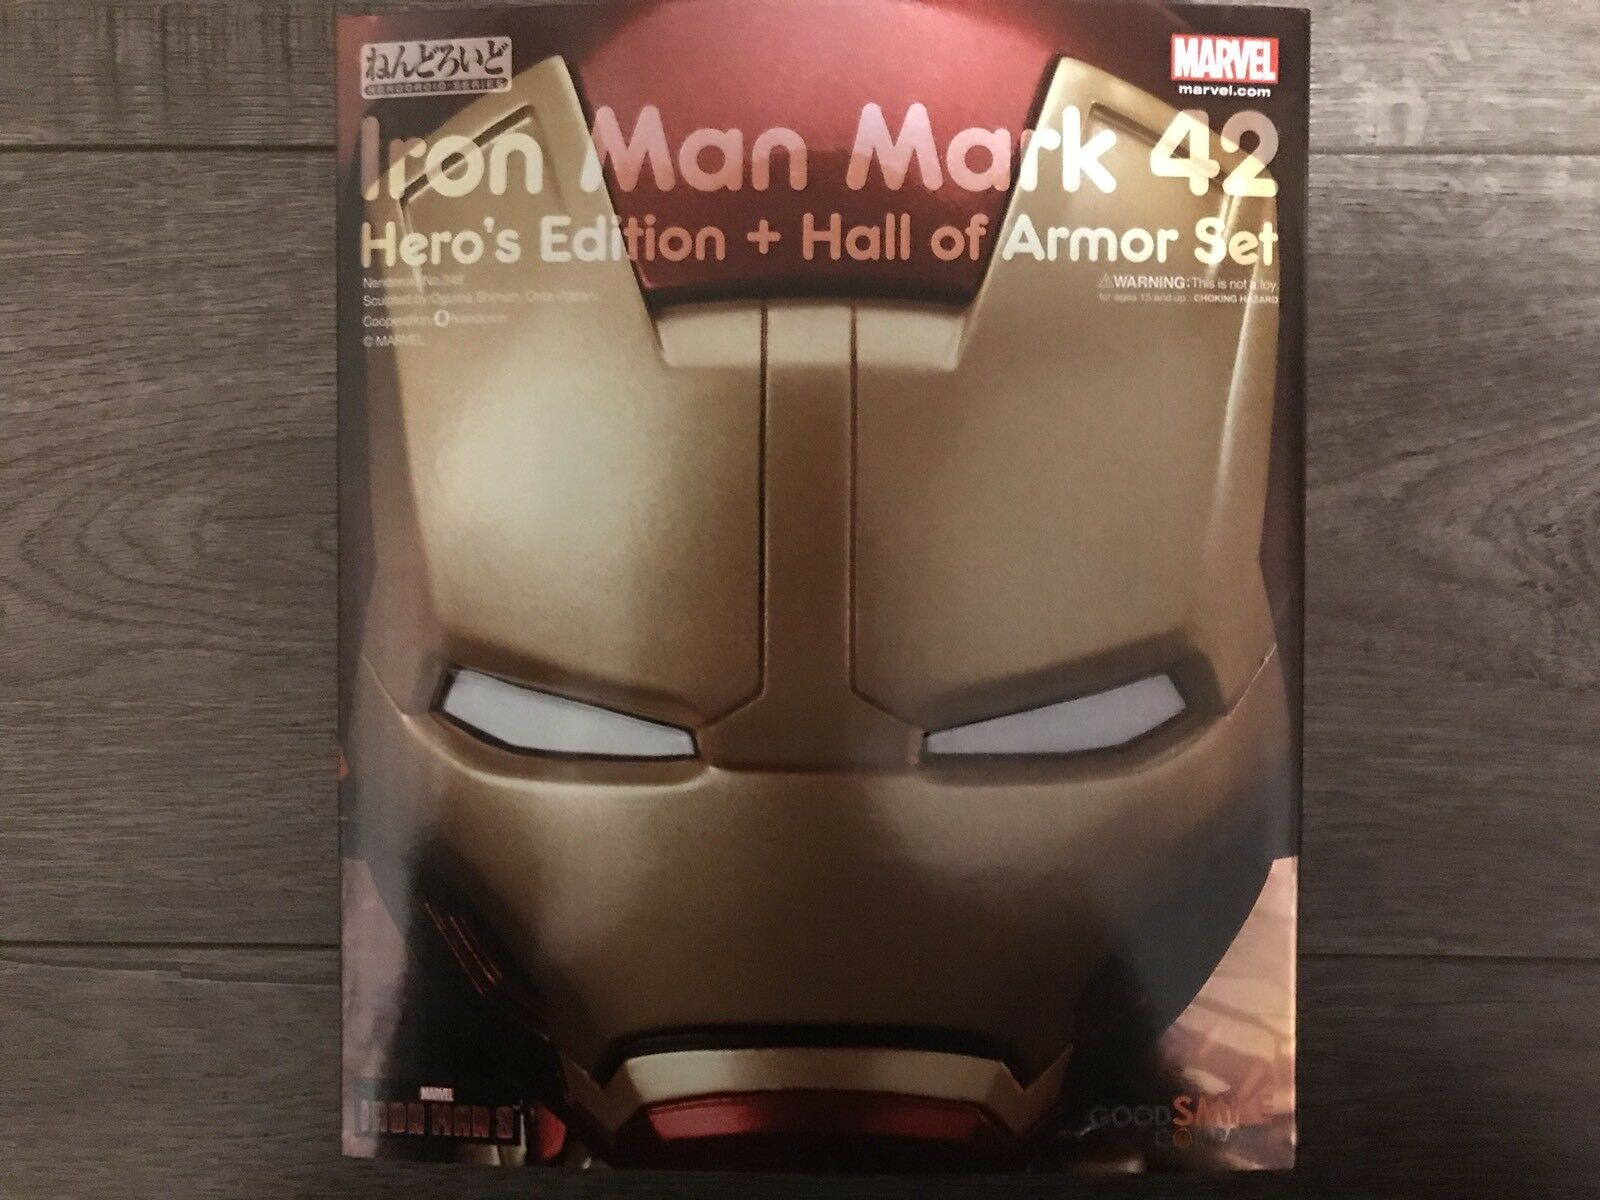 Good Smile Company IronMan mark 42 349 Hero's Edition + Hall of Armor Avengers